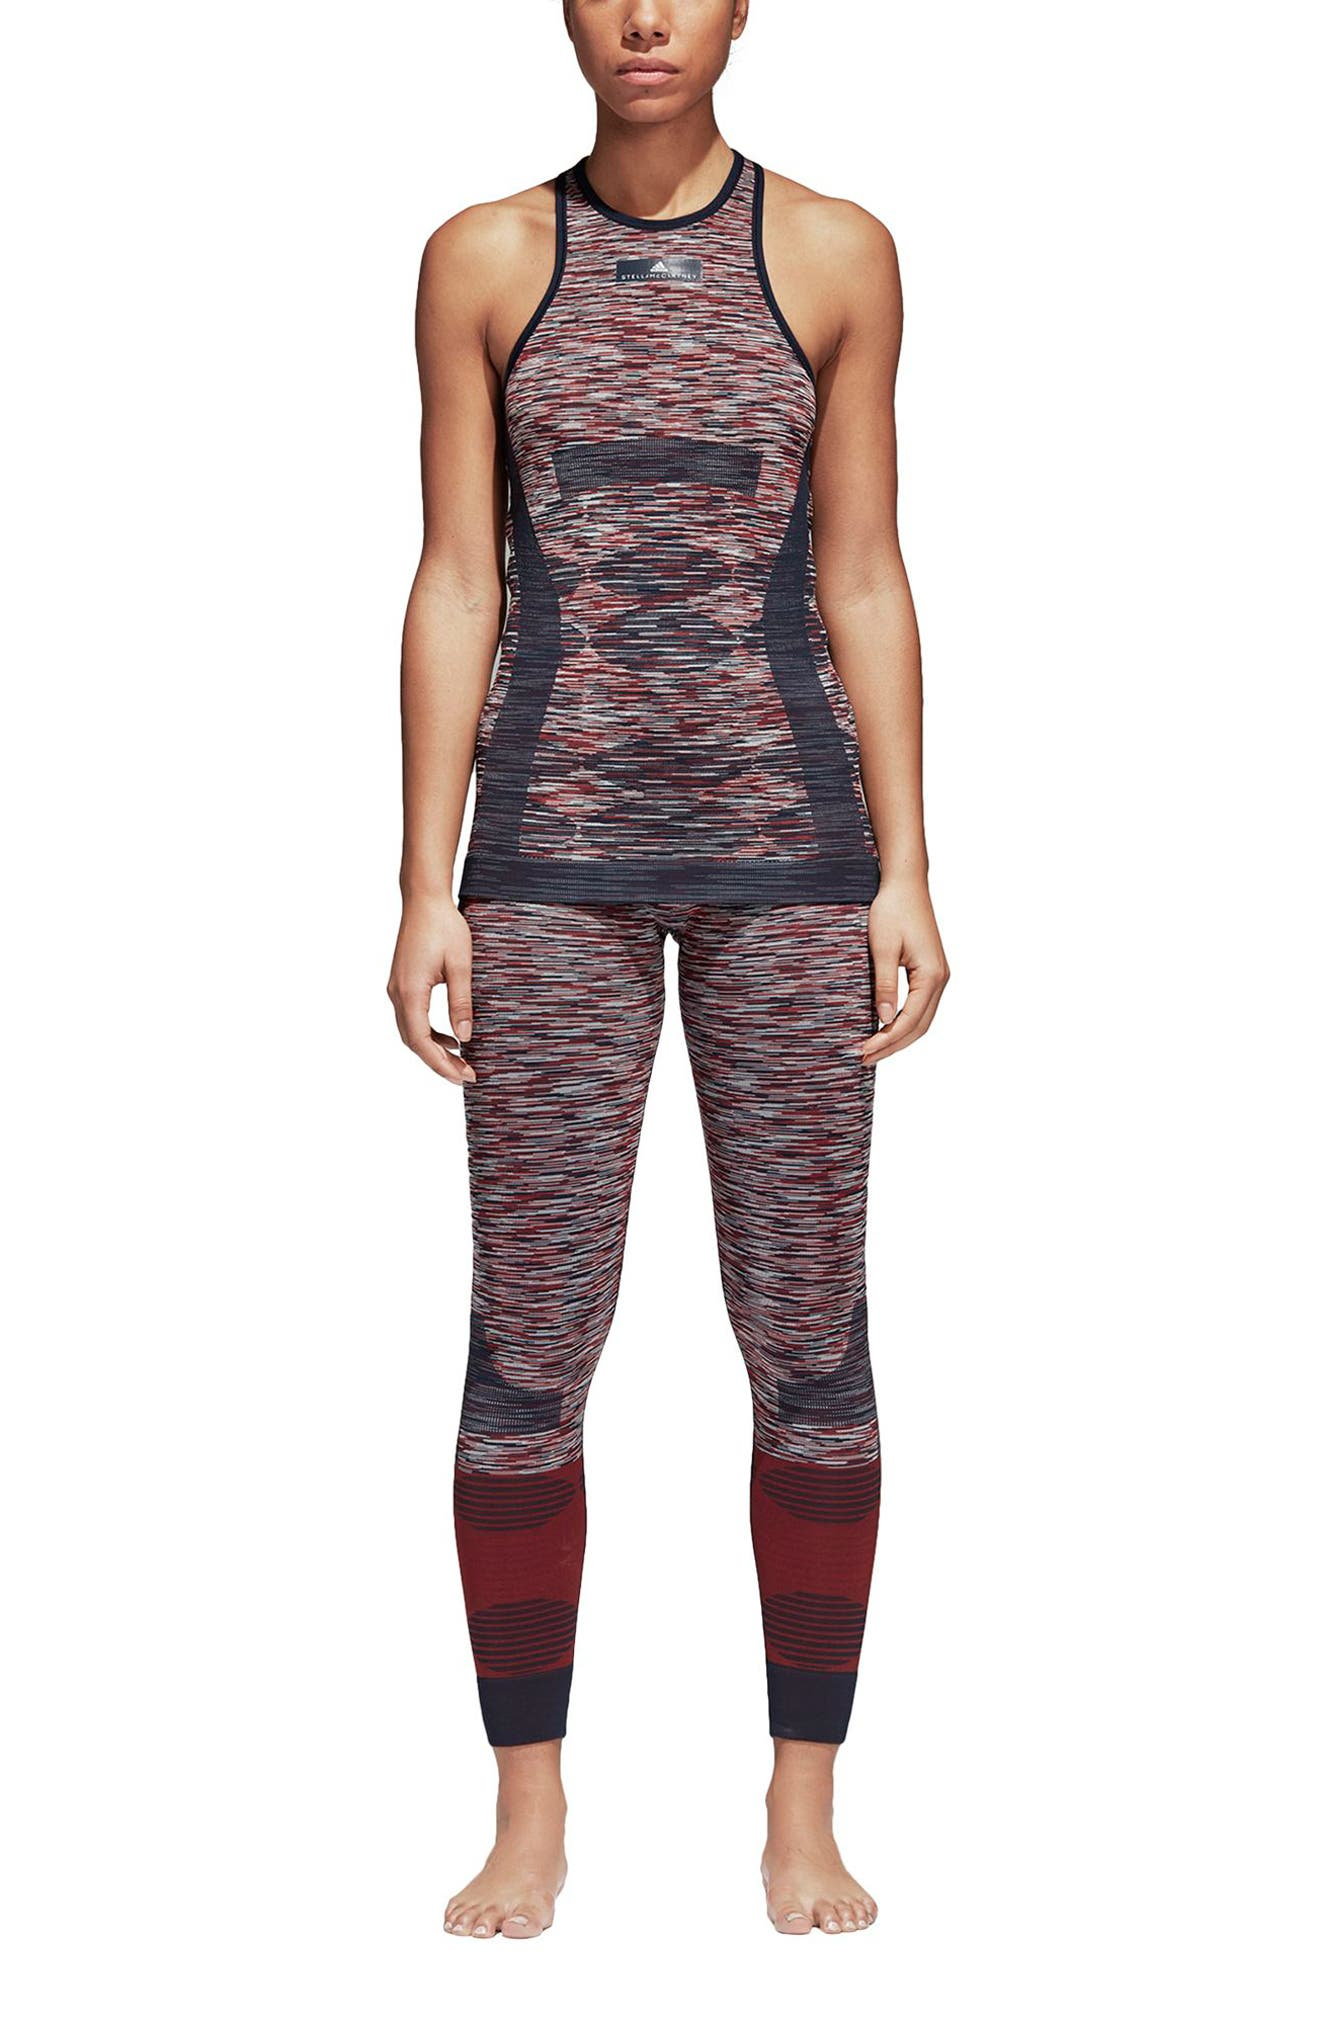 Yoga Seamless Space Dye Leggings,                             Alternate thumbnail 8, color,                             Navy